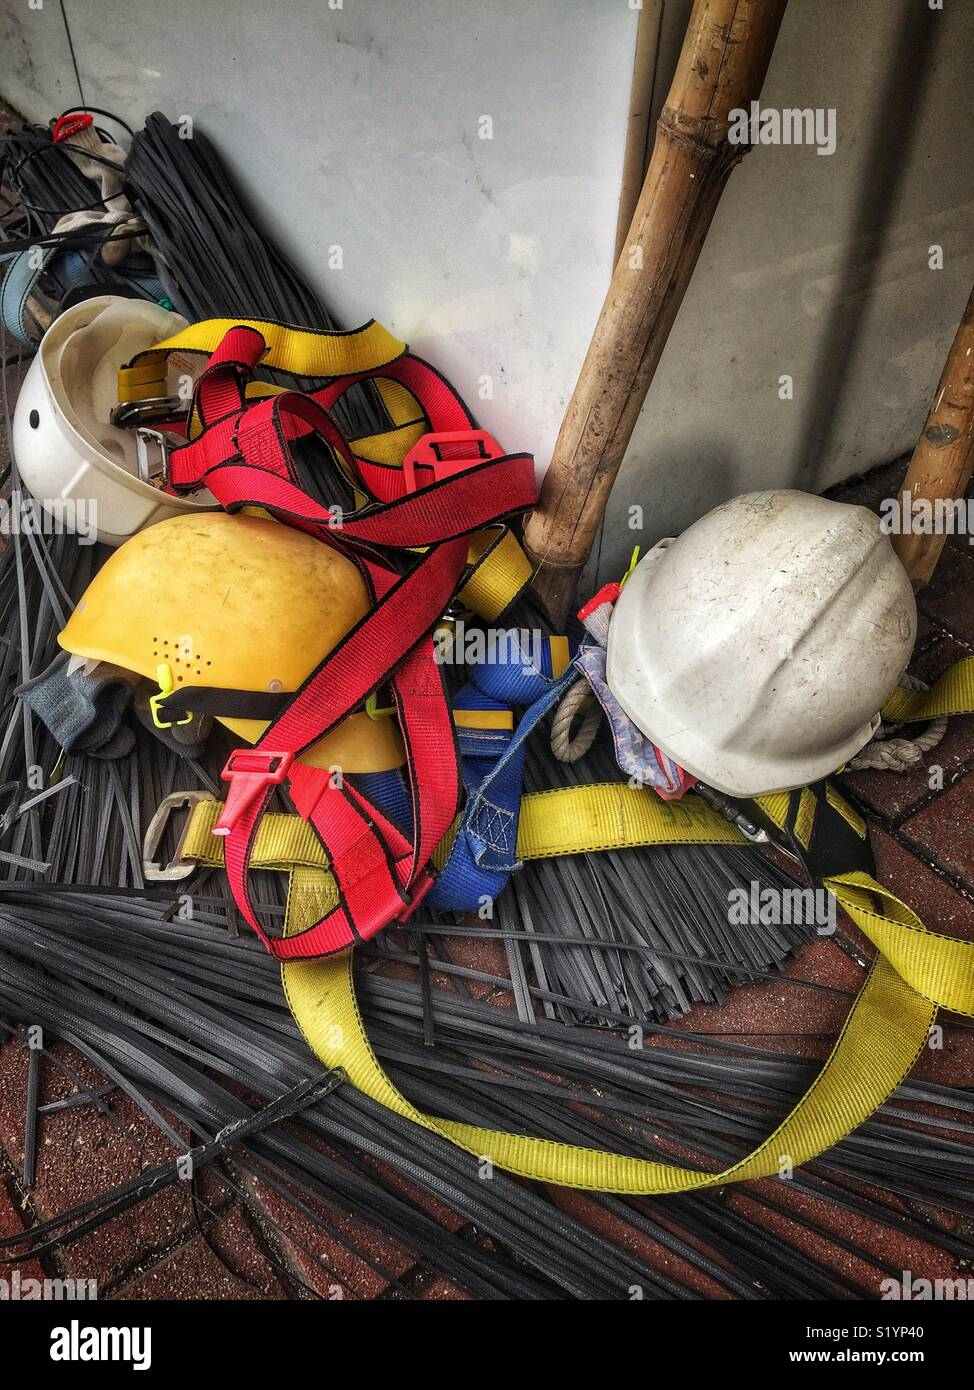 Safety helmets, harnesses and plastic ties used to construct bamboo scaffolding, Wan Chai, Hong Kong Island - Stock Image